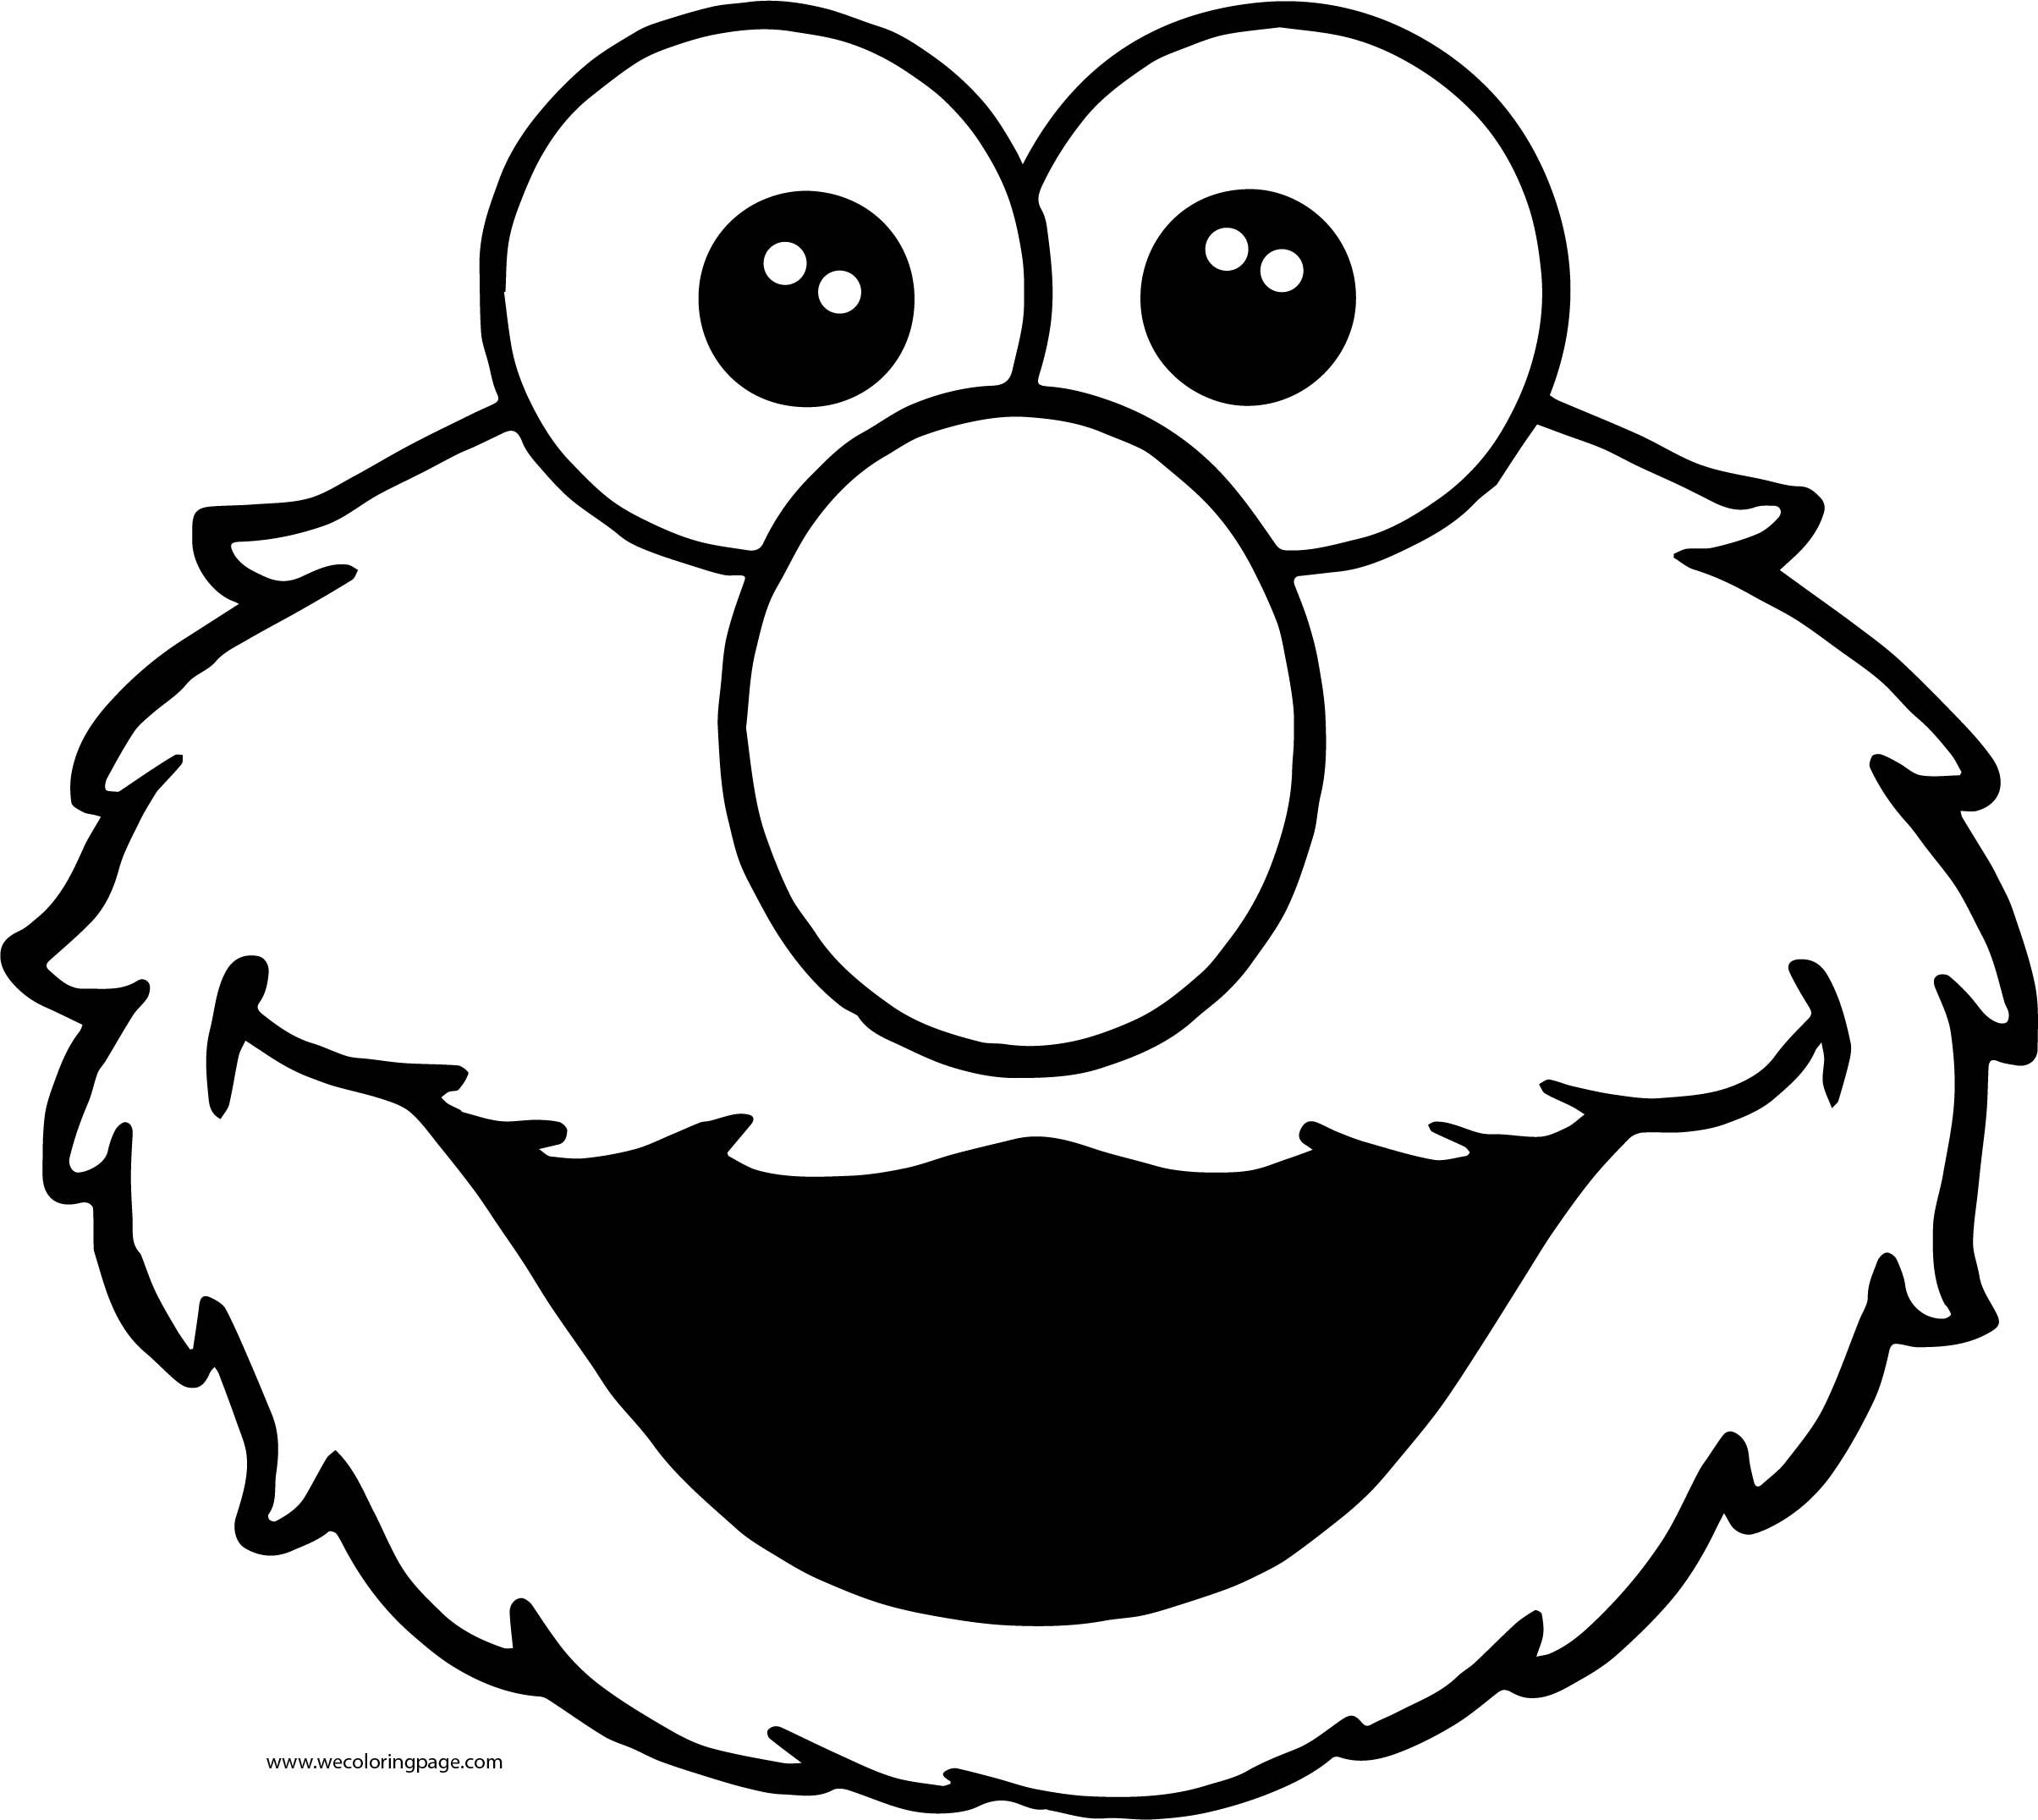 Most Popular Sesame Street Characters Elmo Sesame Street Coloring Page